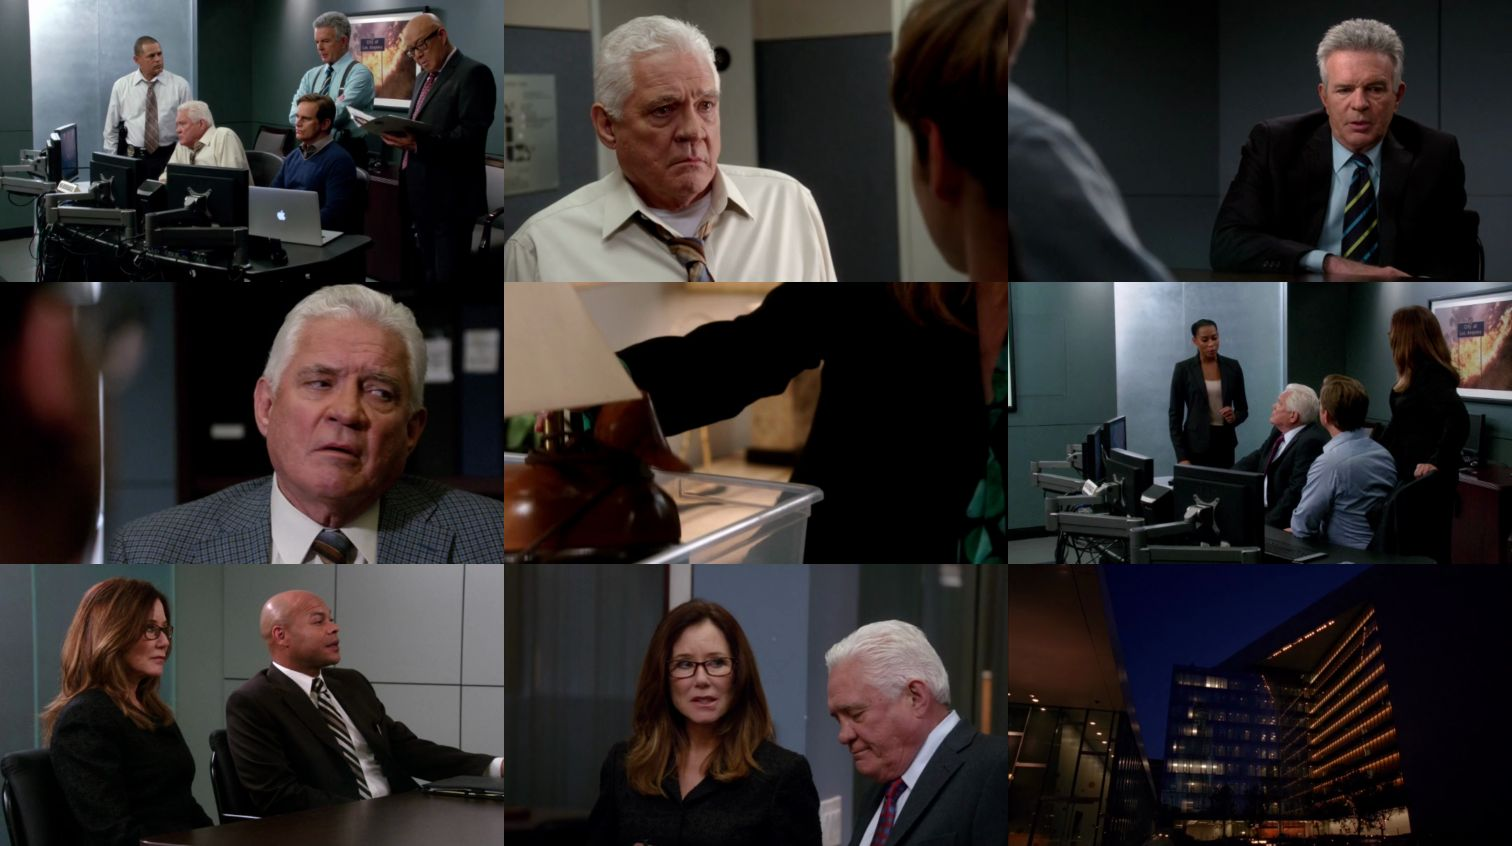 Major Crimes S04E06 720p HDTV X264-DIMENSION